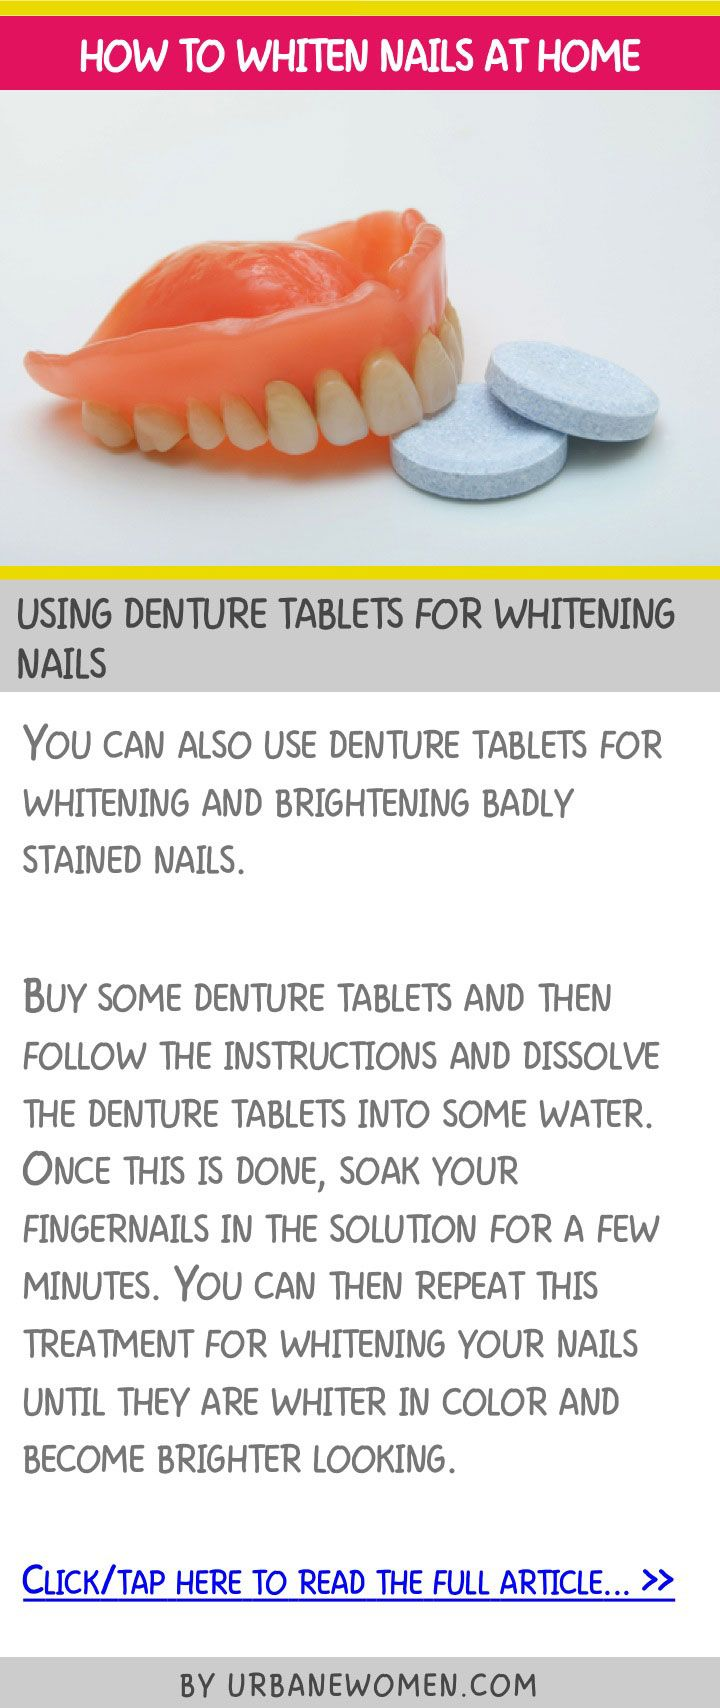 How to whiten nails at home - Using denture tablets for whitening nails